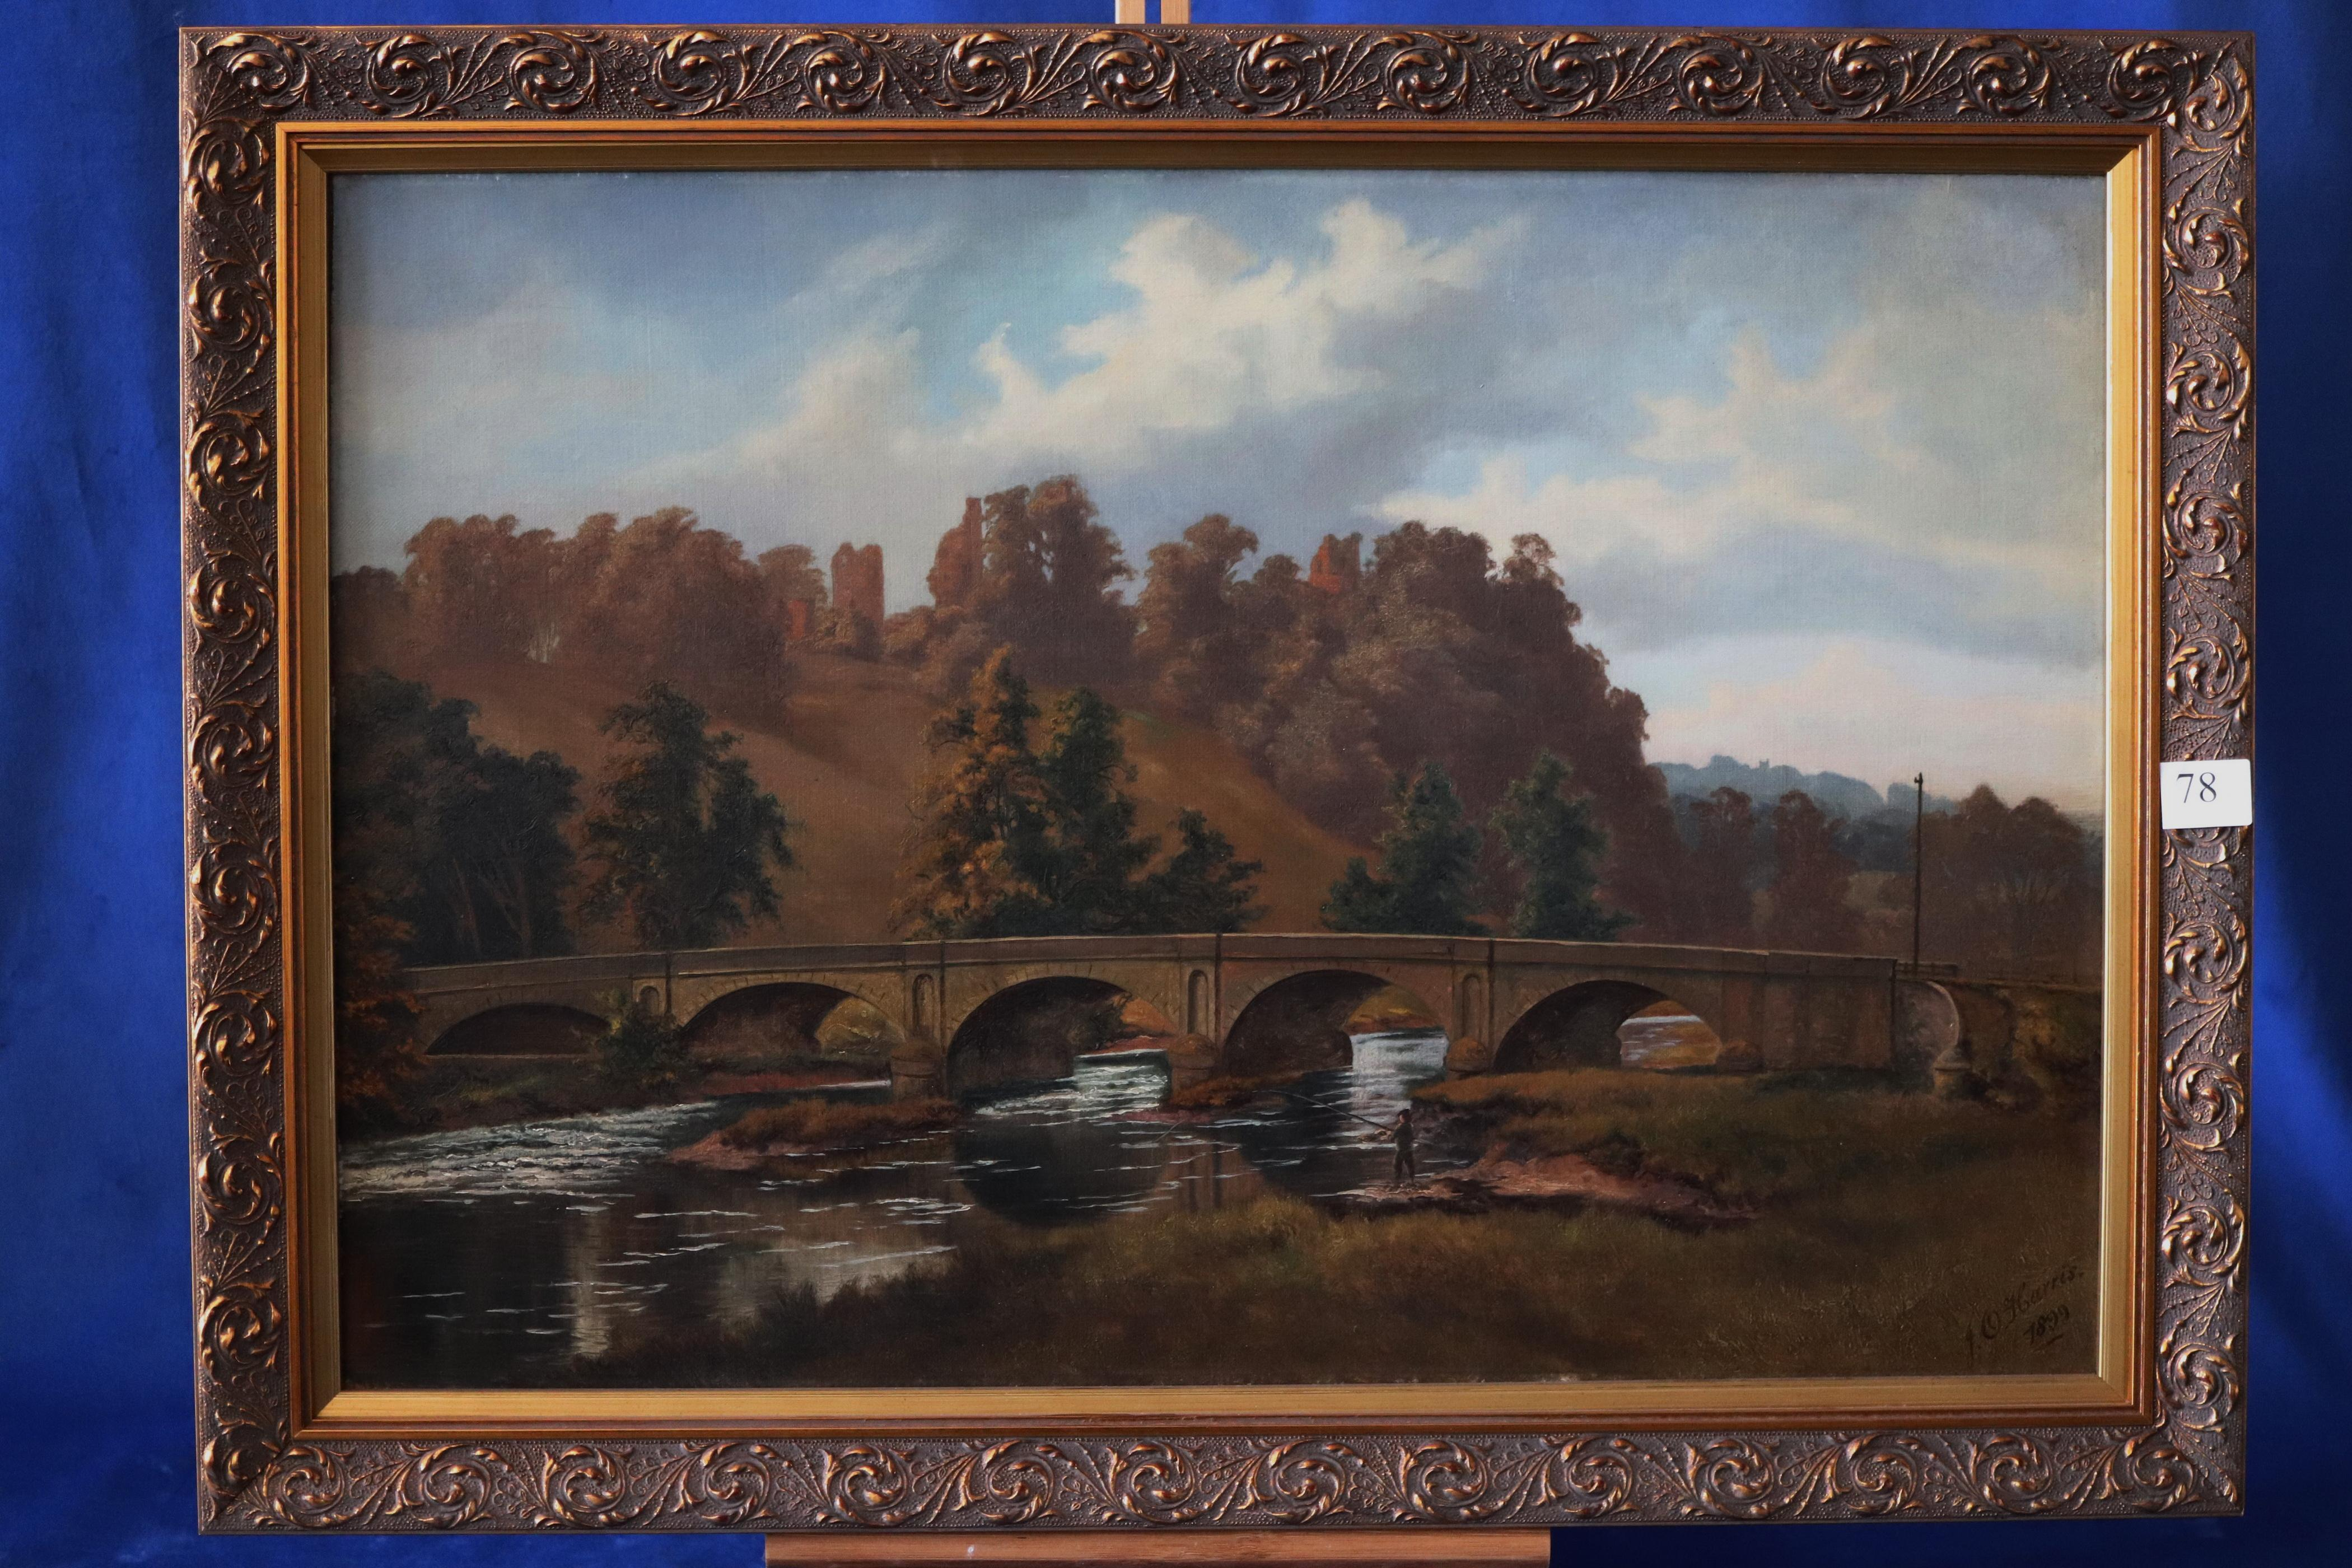 J.O HARRIS, FISHERMAN, OIL ON CANVAS, SIGNED LOWER RIGHT AND DATED 1899, OLD LABEL ON THE REVERSE, TUTBURY BRIDGE, MEASURES 45CM X 65CM